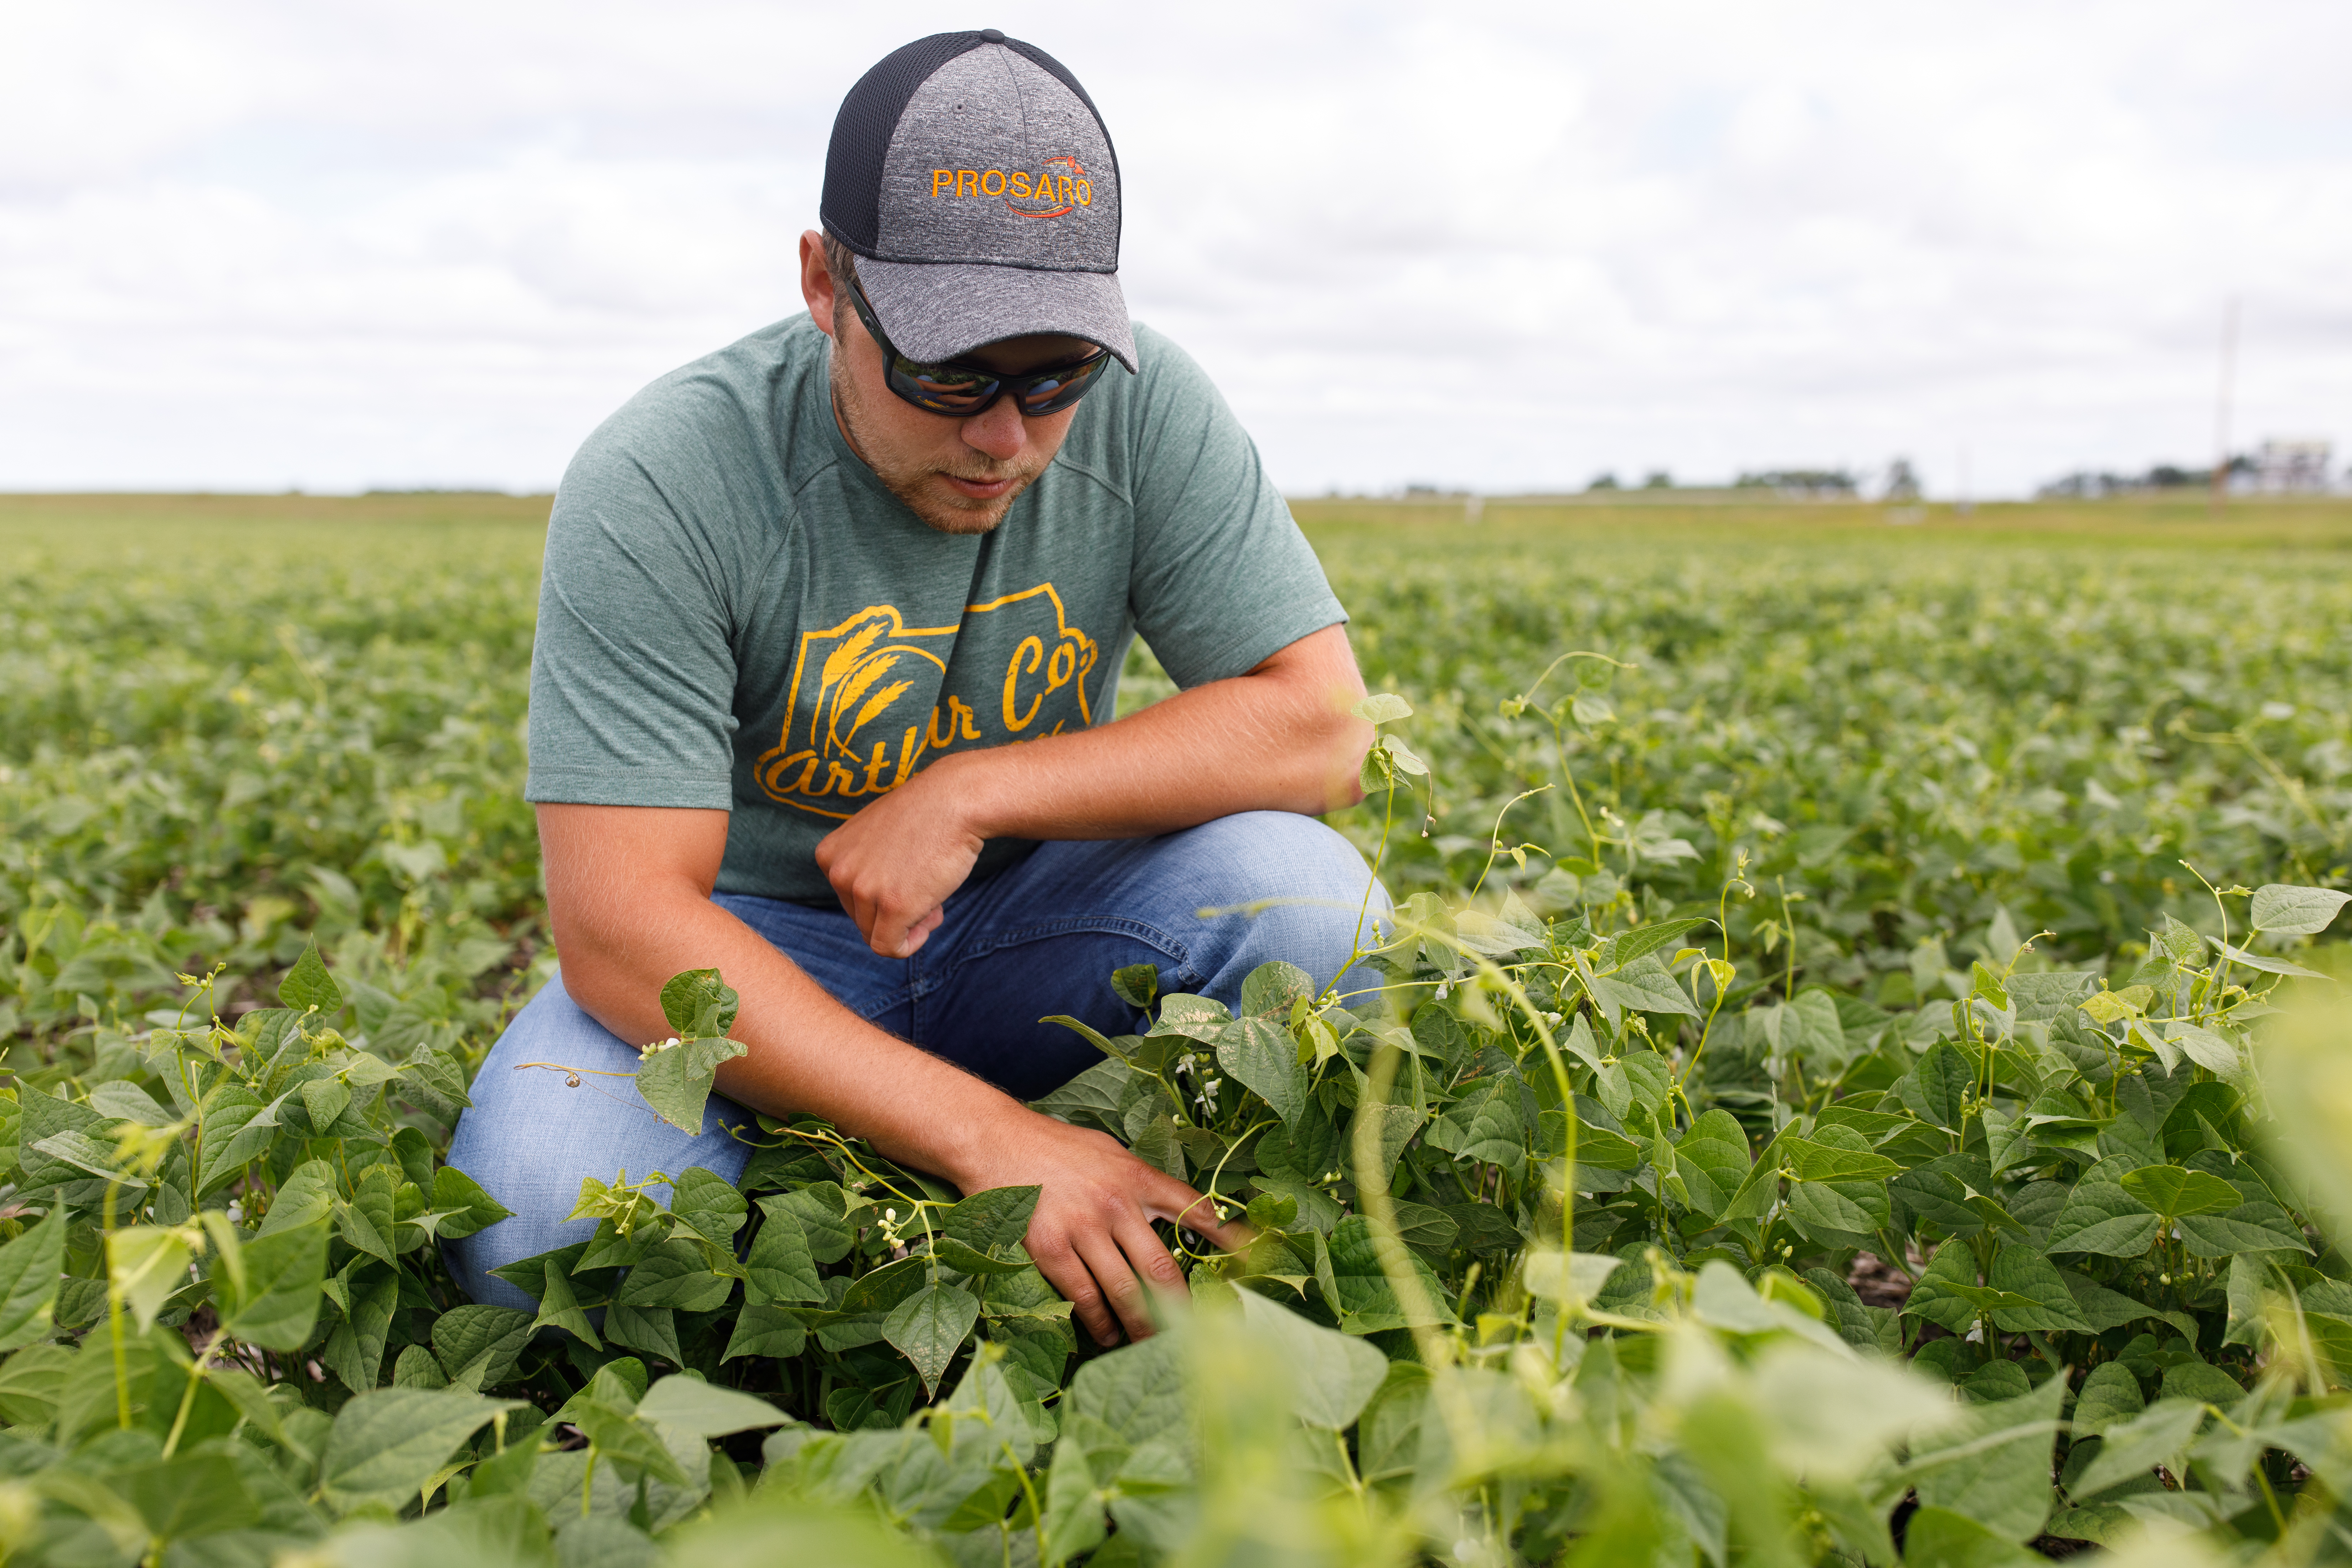 agronomist scouting soybean crop